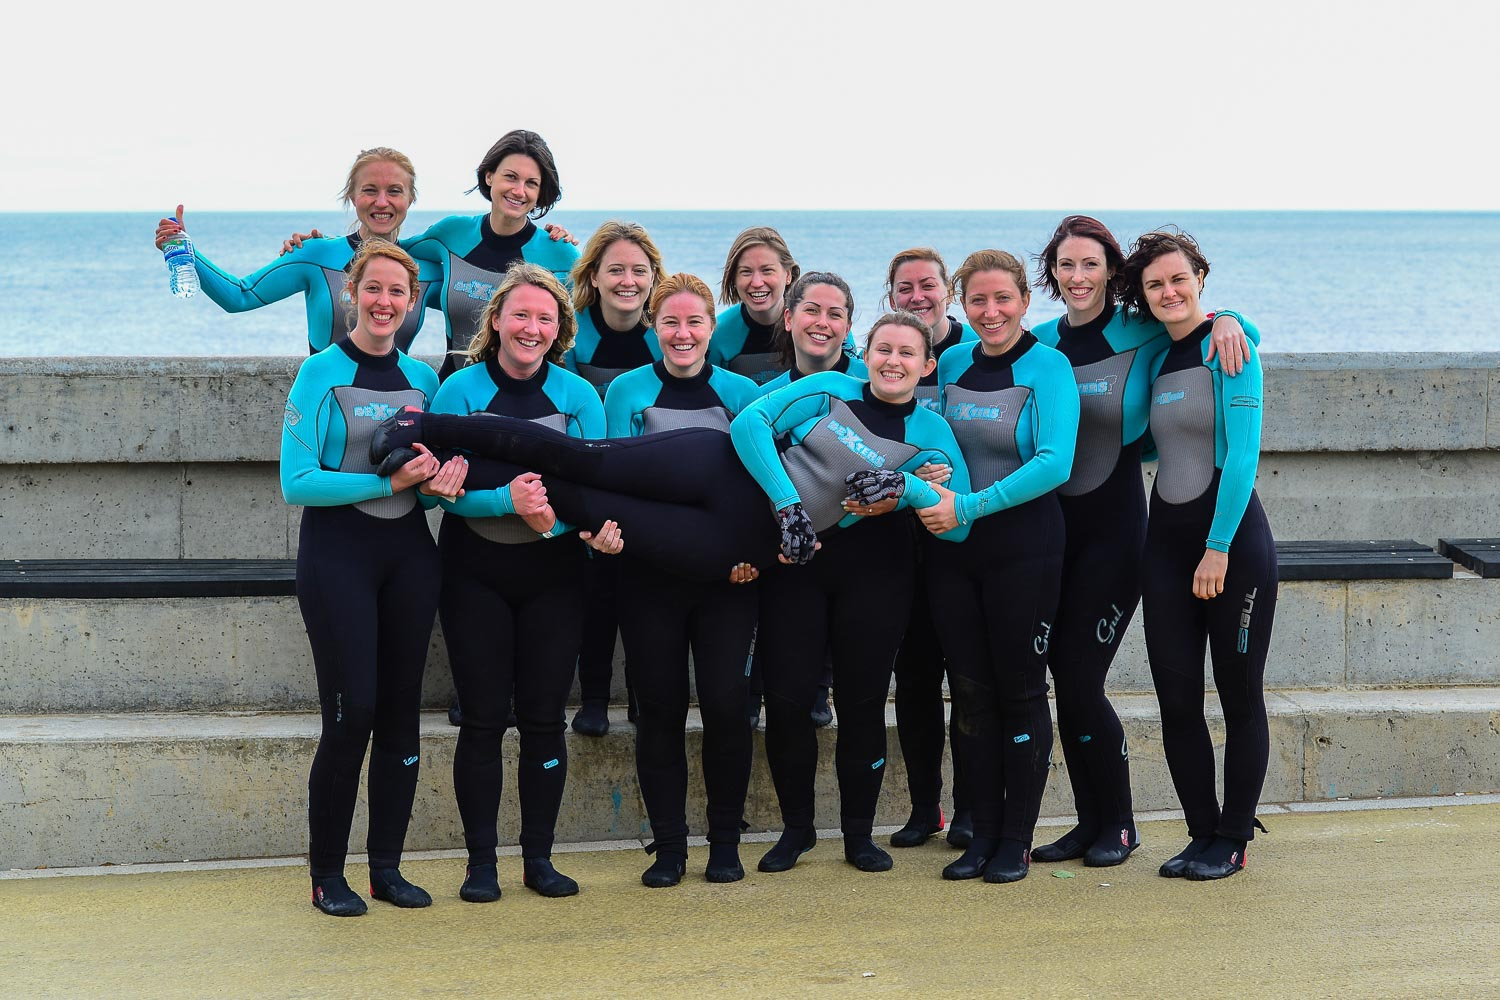 Hen party group photo, holding the bride!